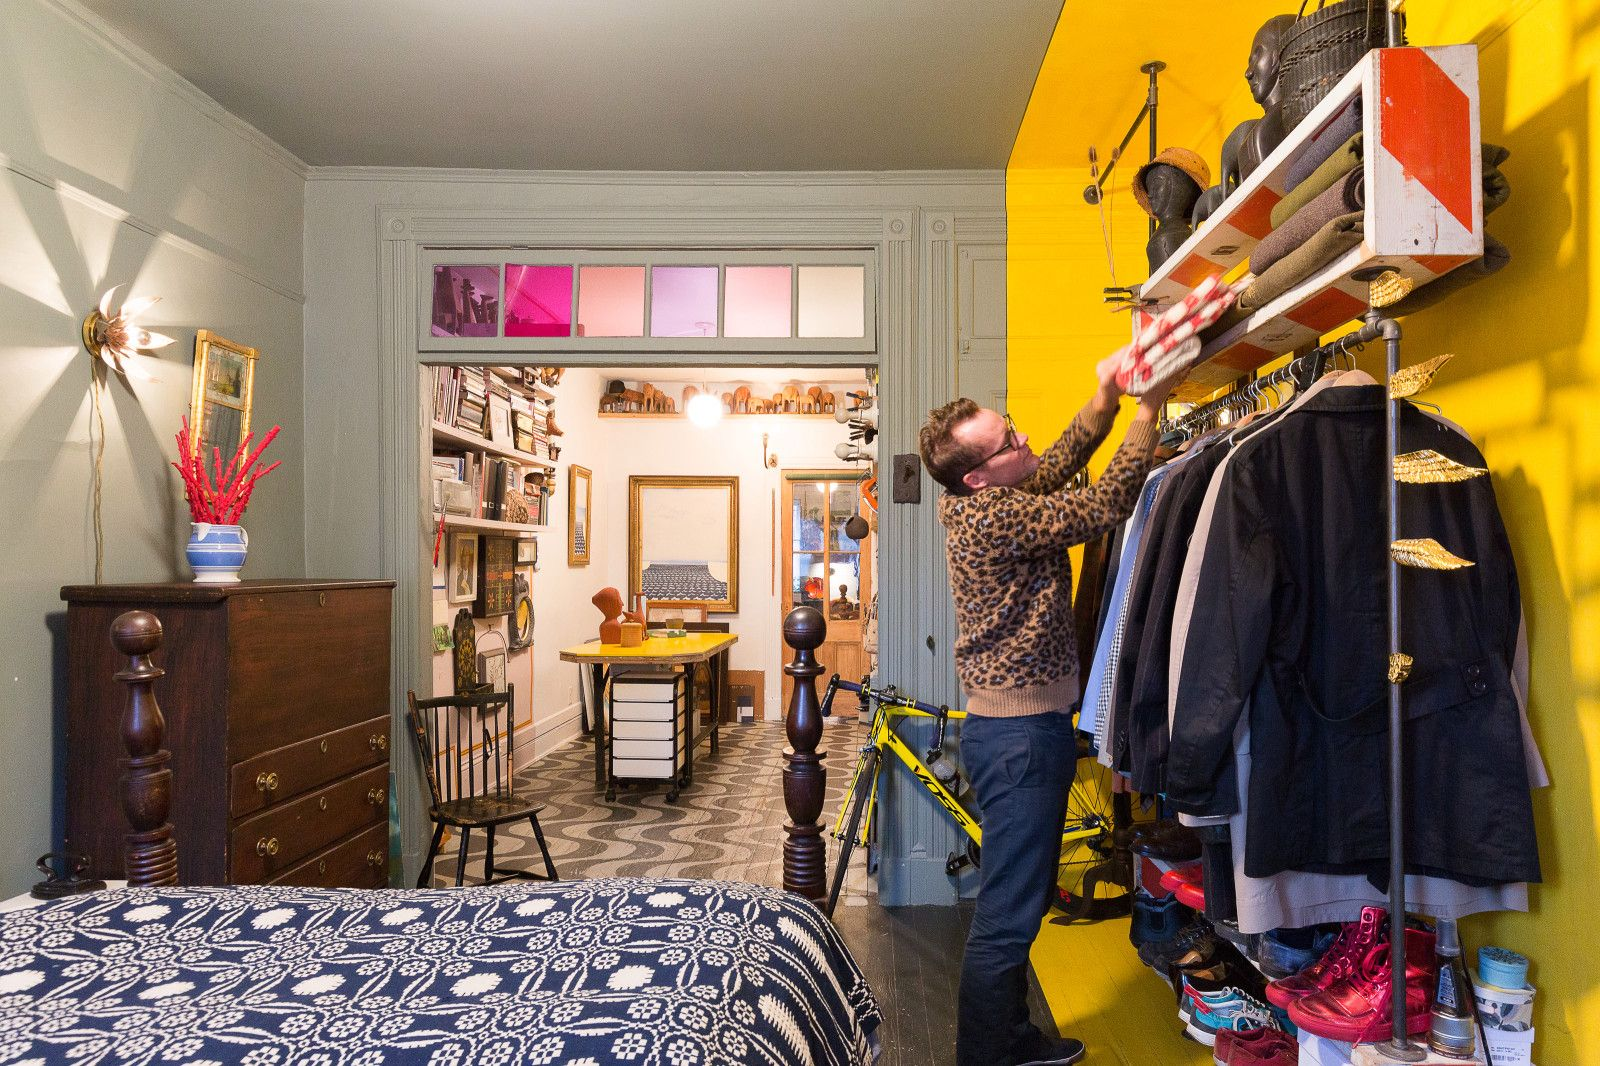 Fixes for Tight Spaces From Desperate New Yorkers | Small ...